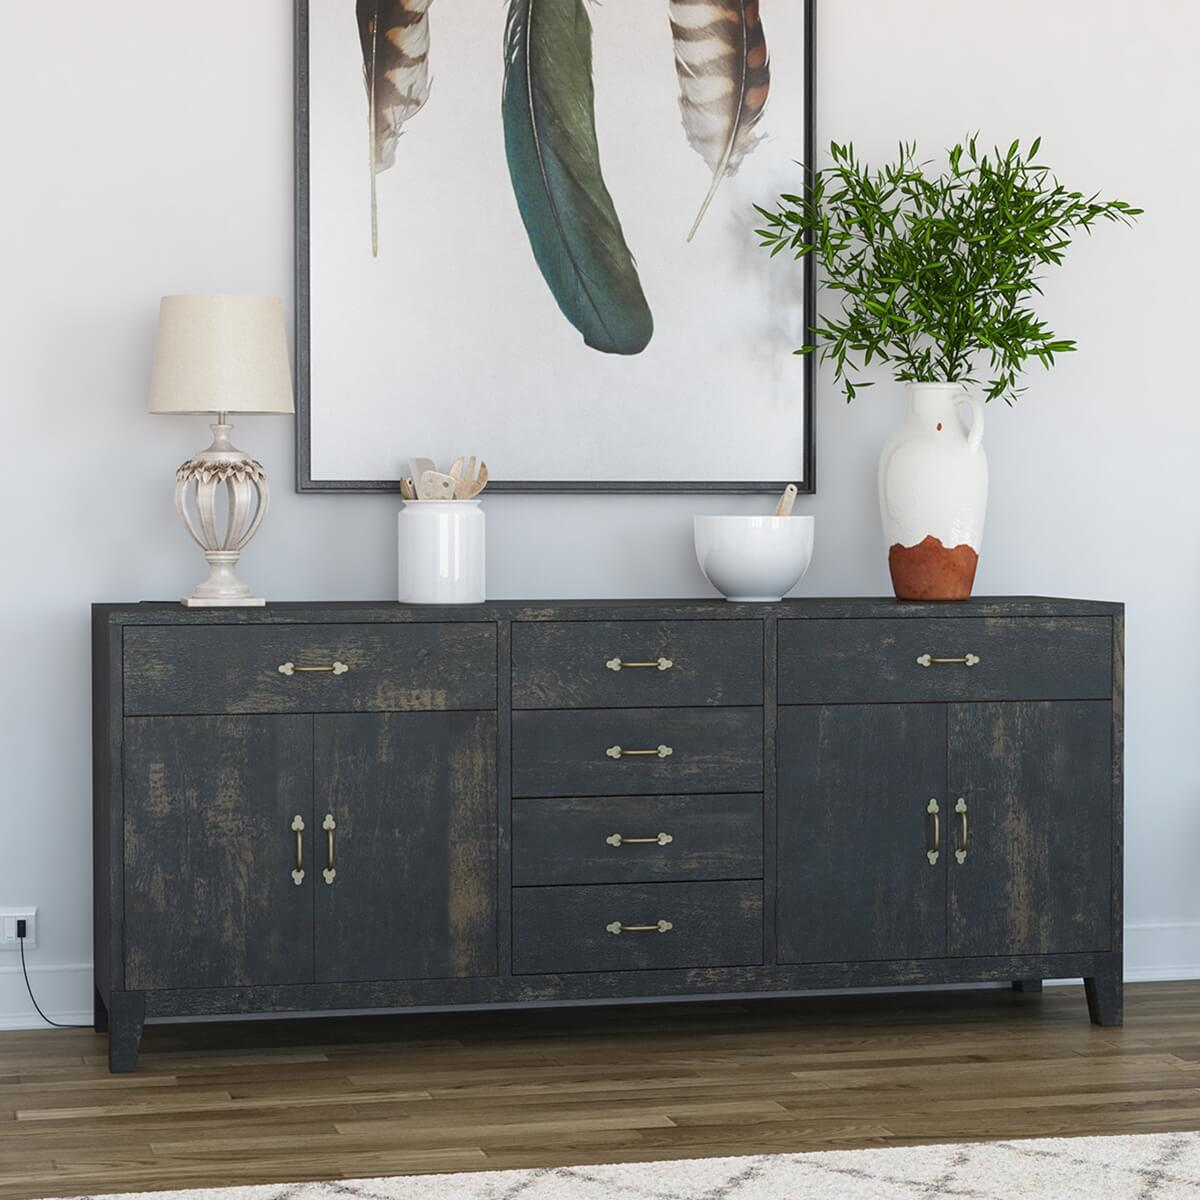 Abingdon Rustic Solid Wood 6 Drawer Extra Long Sideboard Cabinet